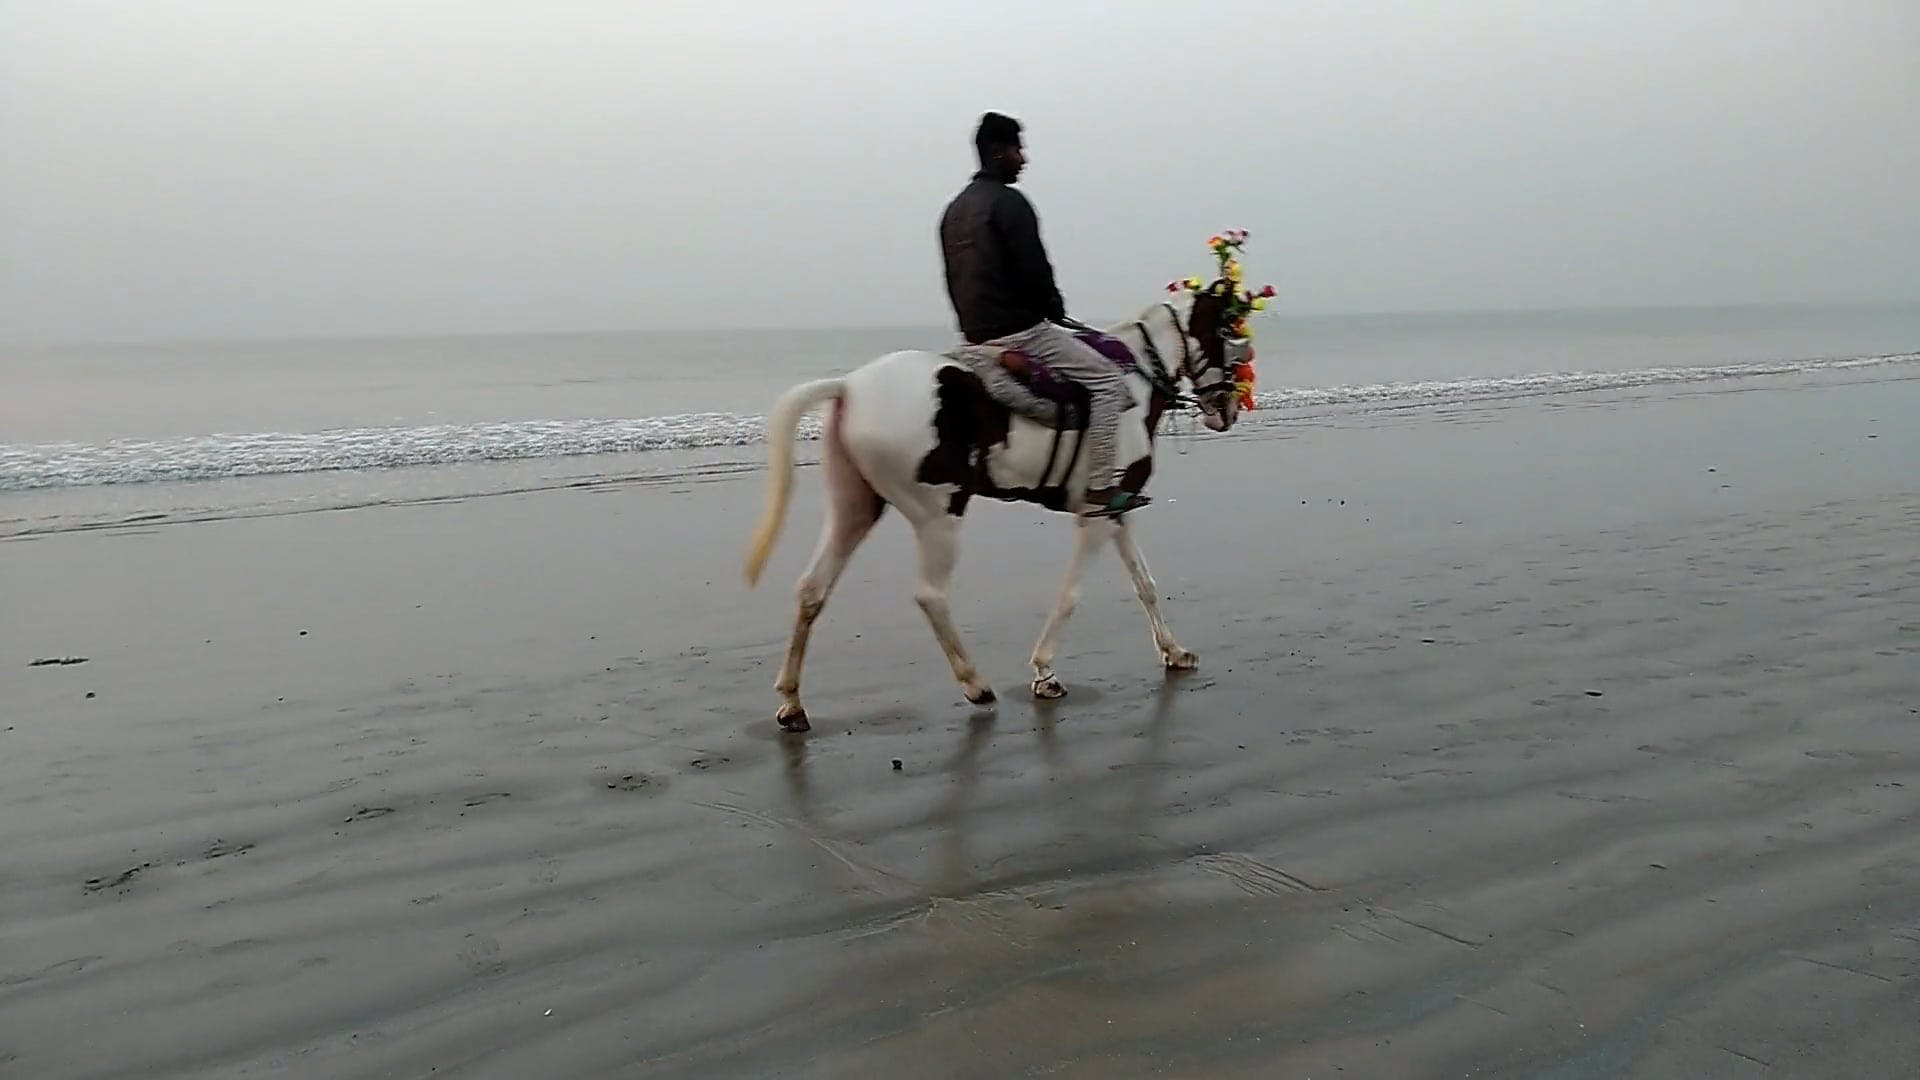 Man Riding A Horse By The Sea